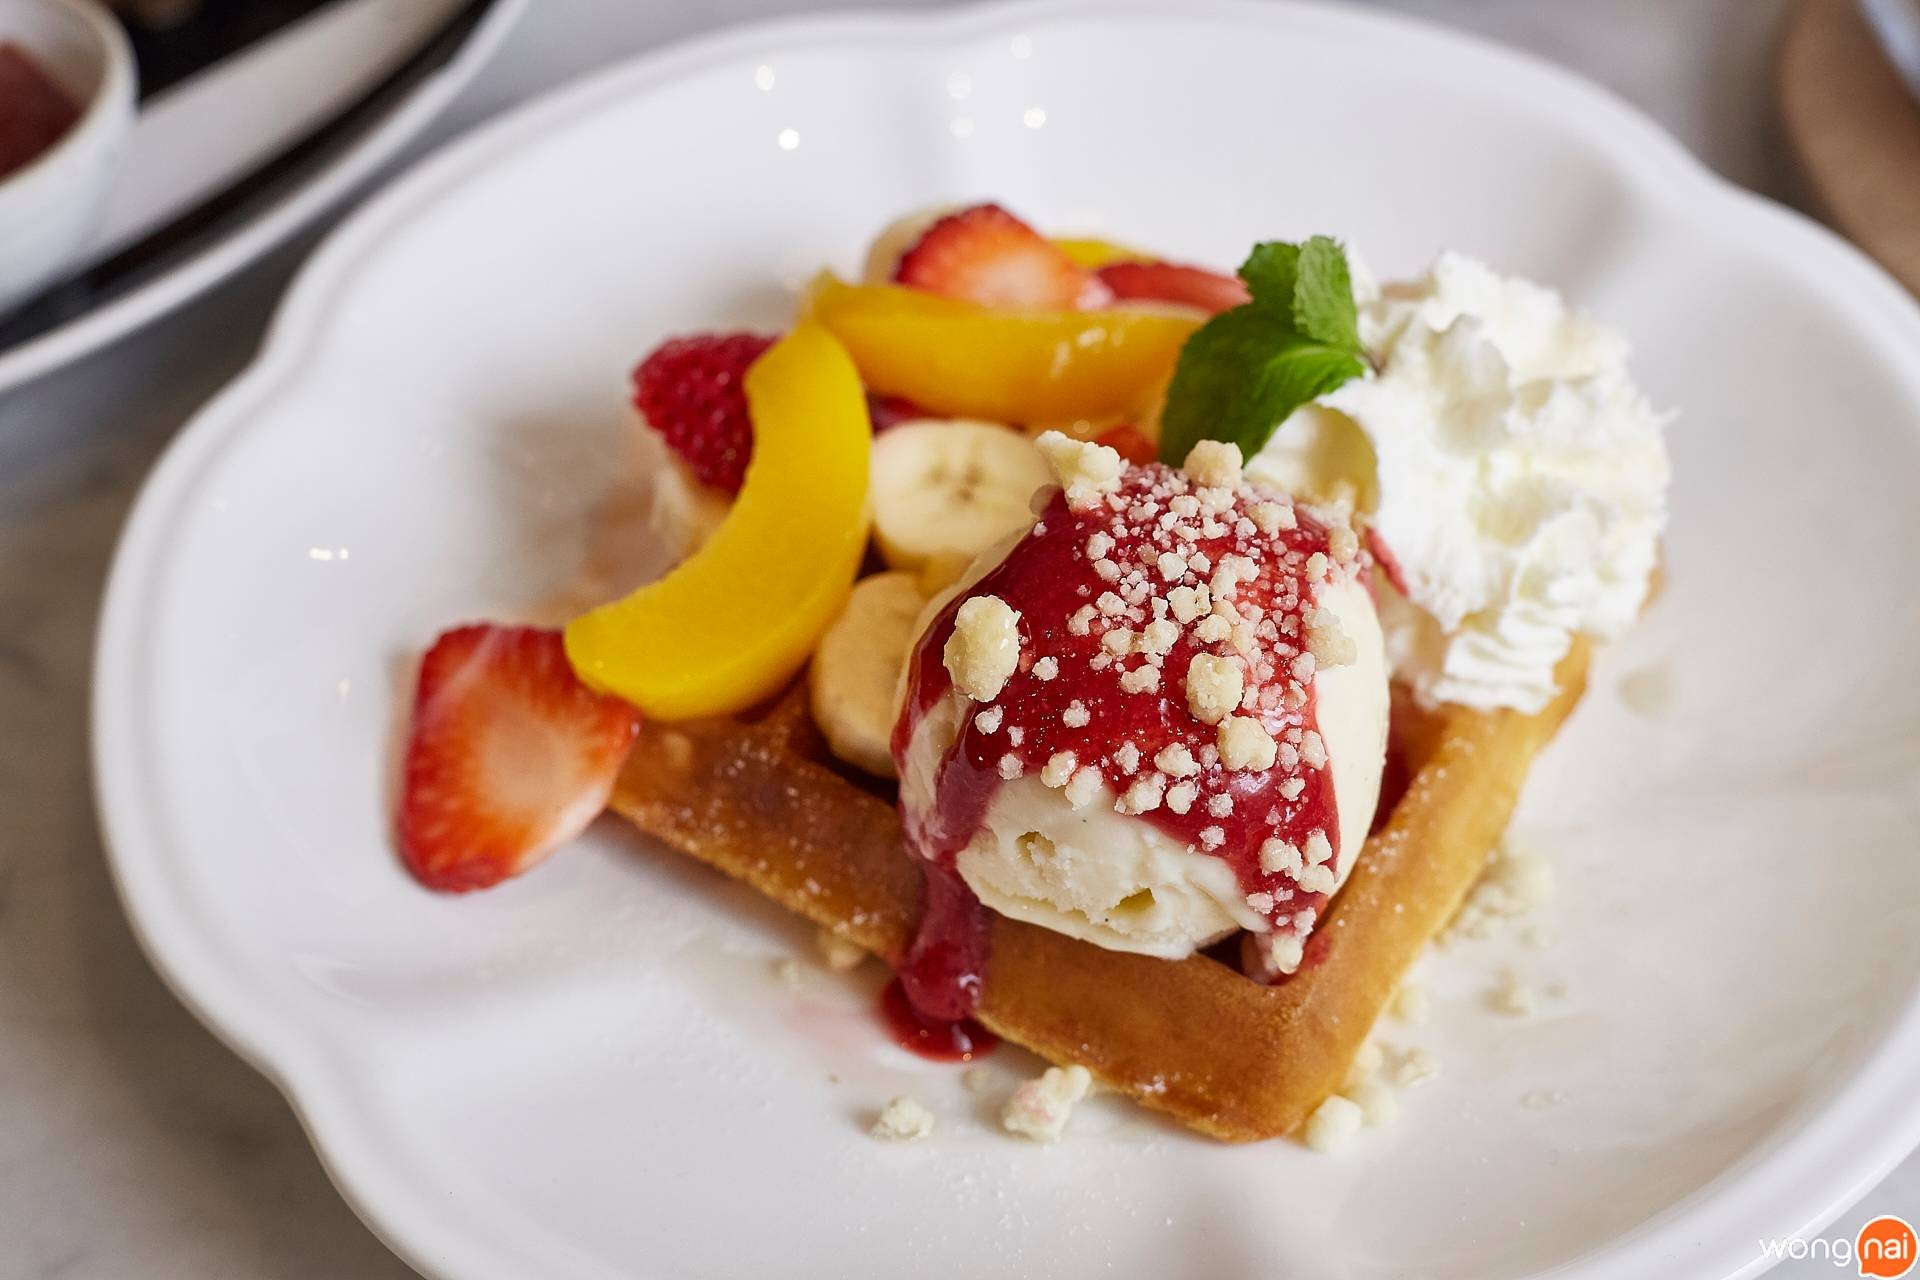 Fruity Waffle ของร้าน On the Table, Tokyo Cafe